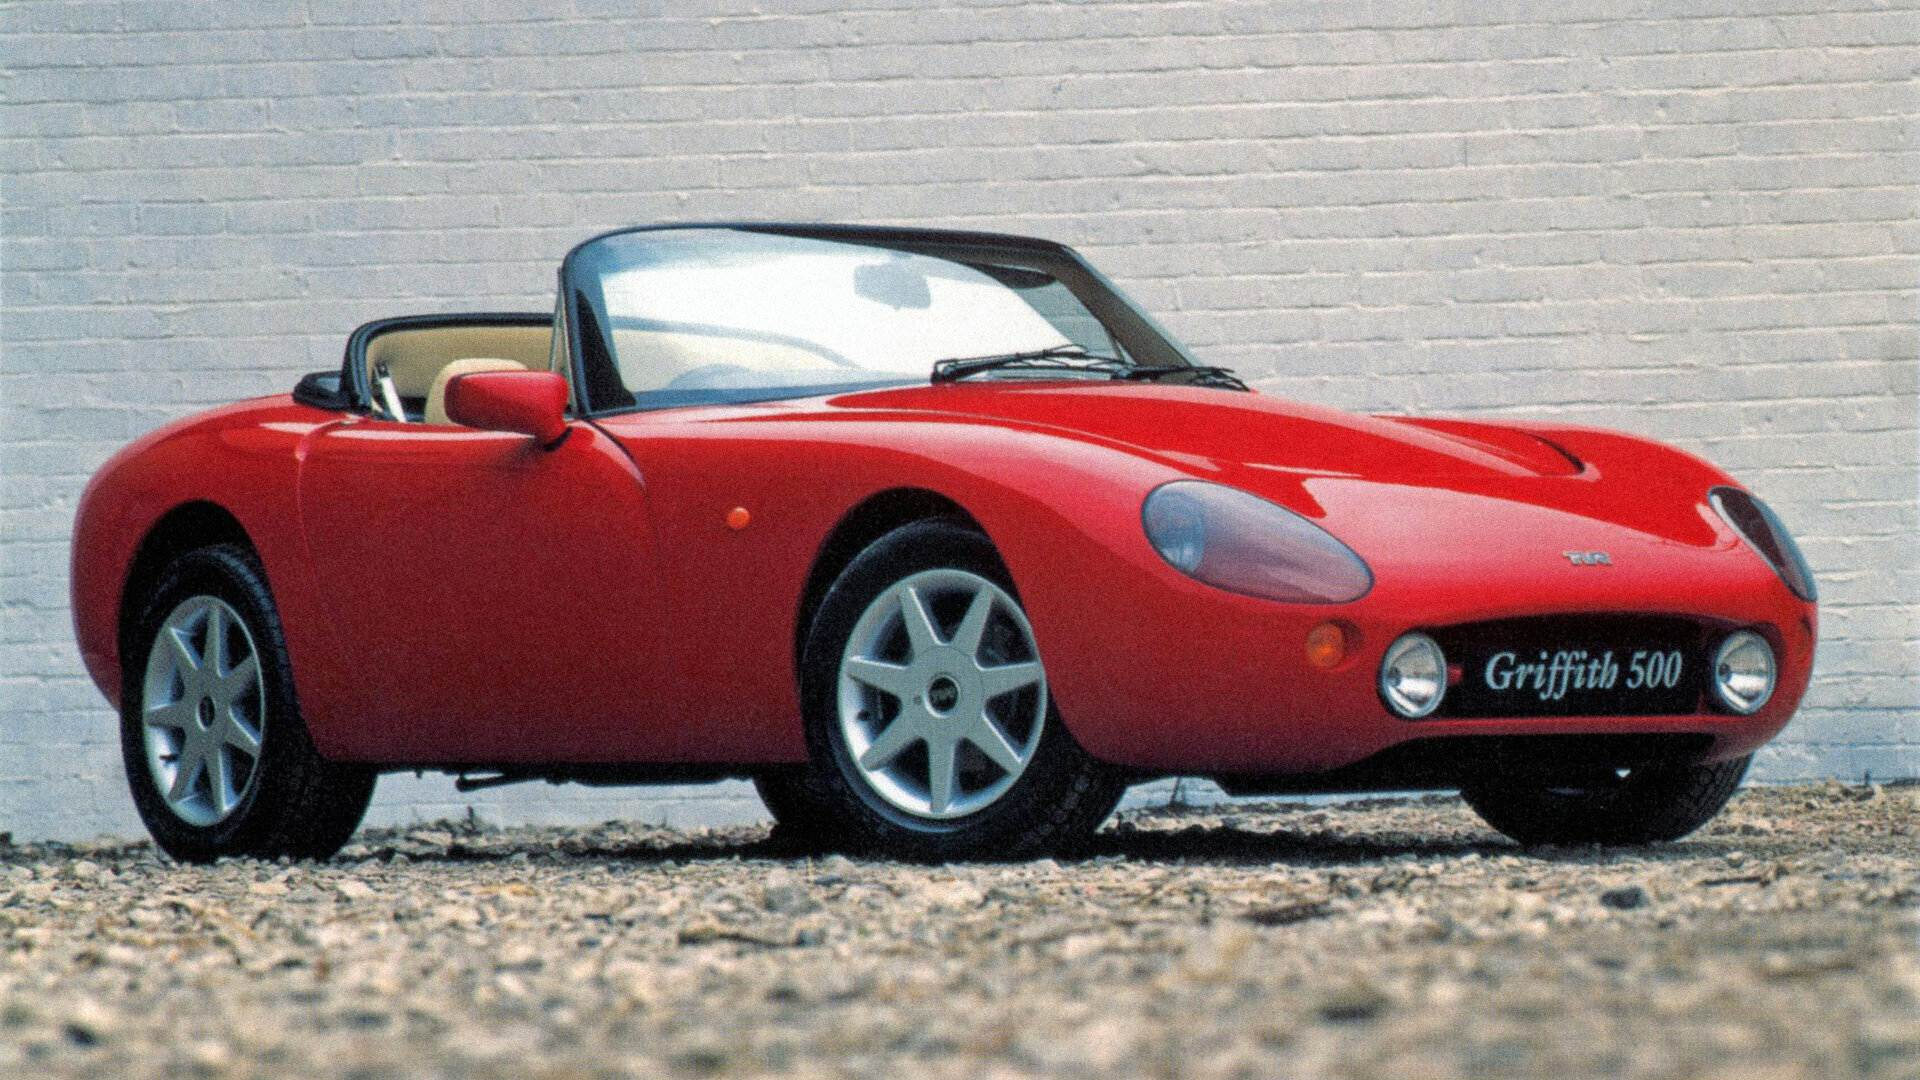 TVR Griffith 500 1